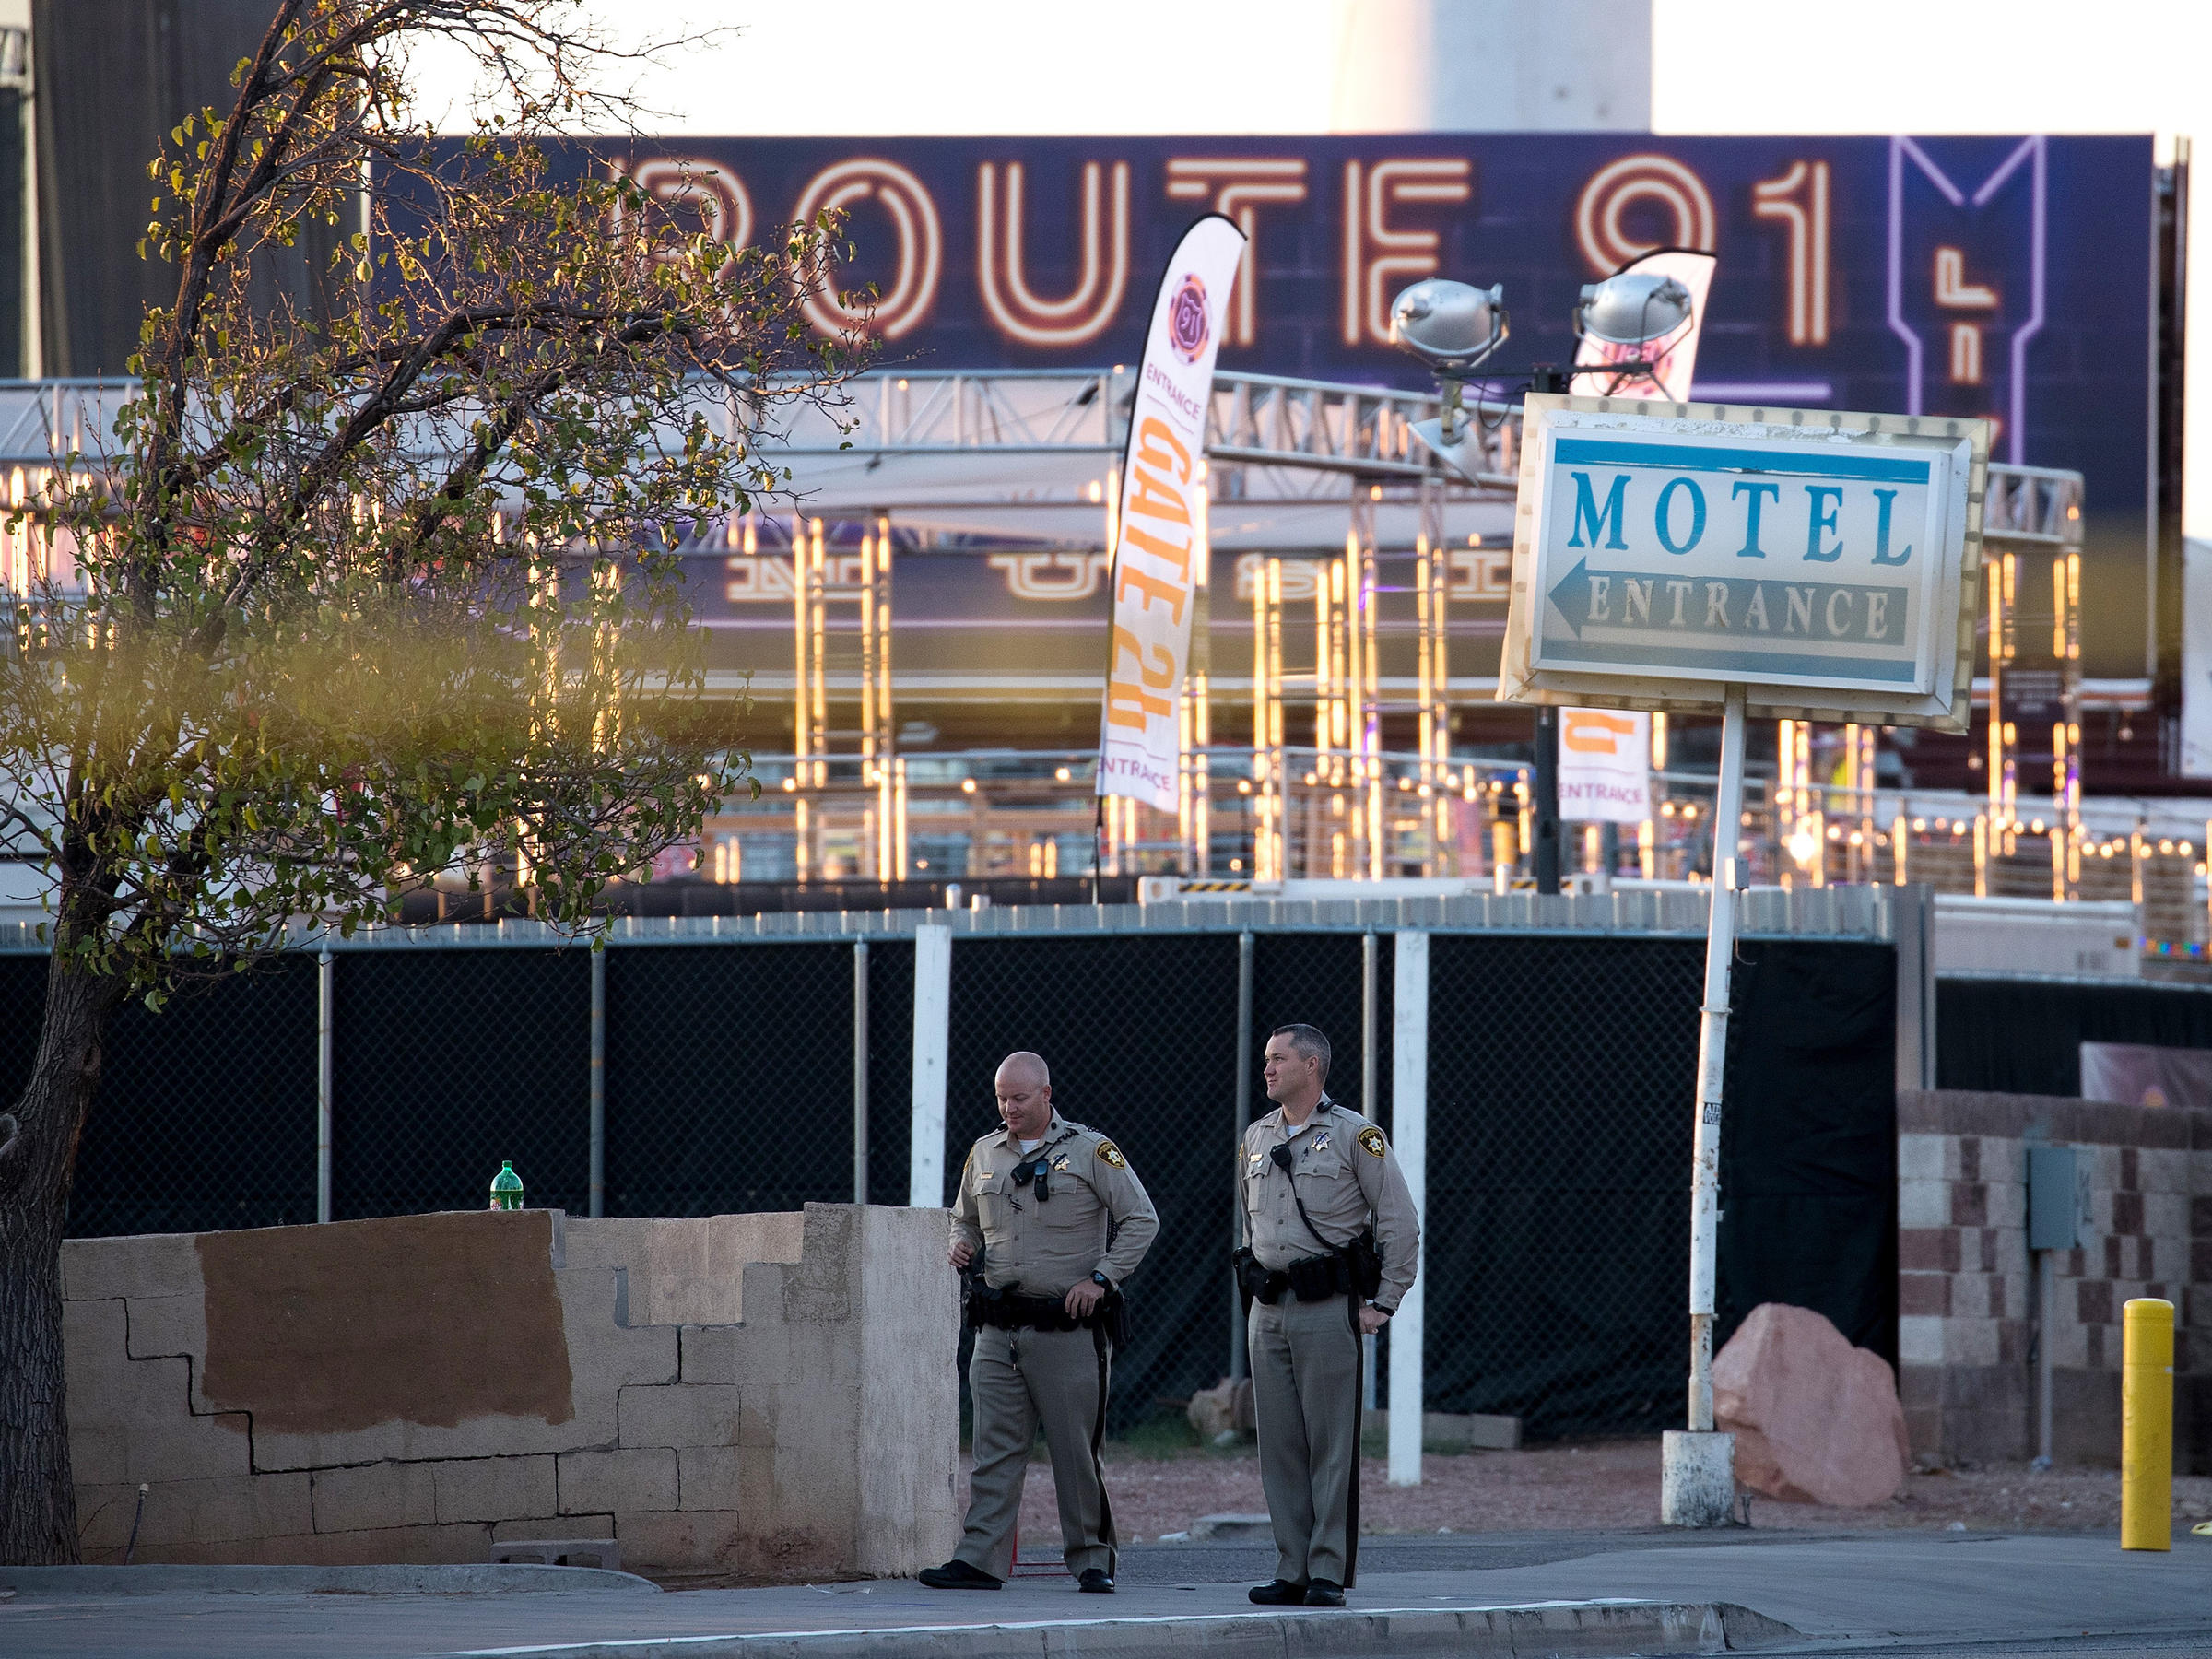 Las Vegas mass shooter may have rigged guns to shoot faster